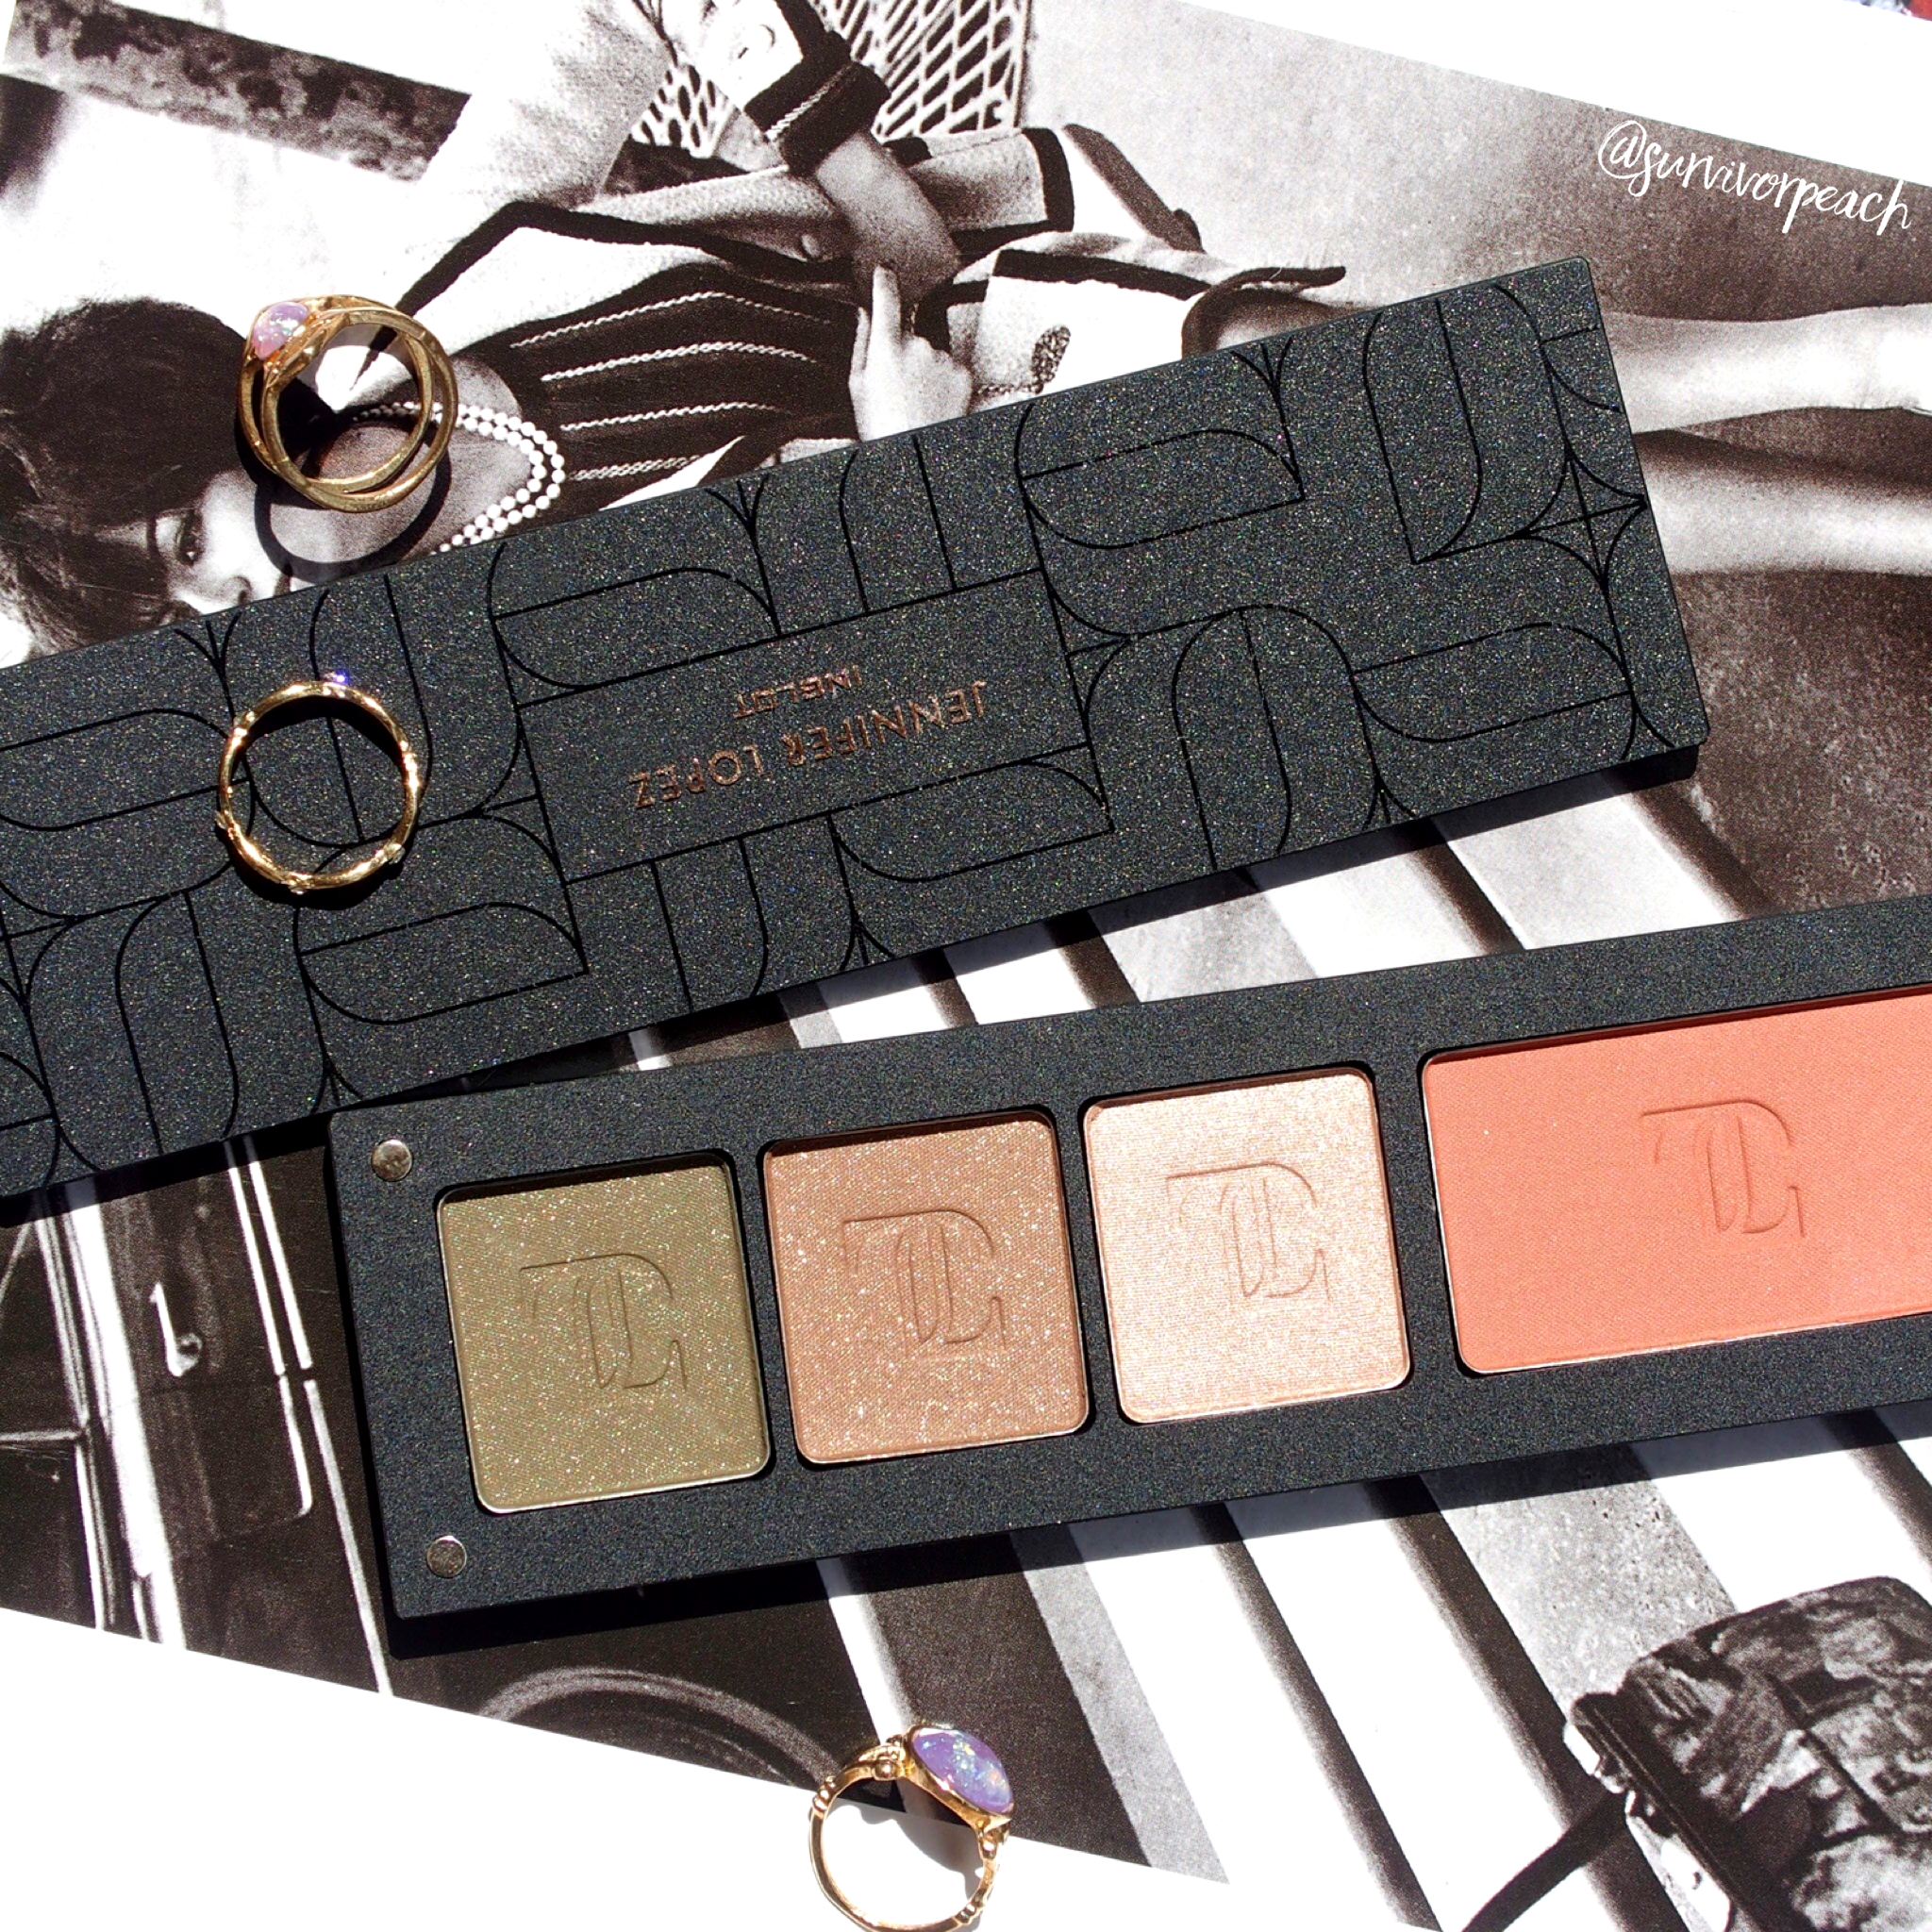 Inglot customized Freedom palette - JLo collab